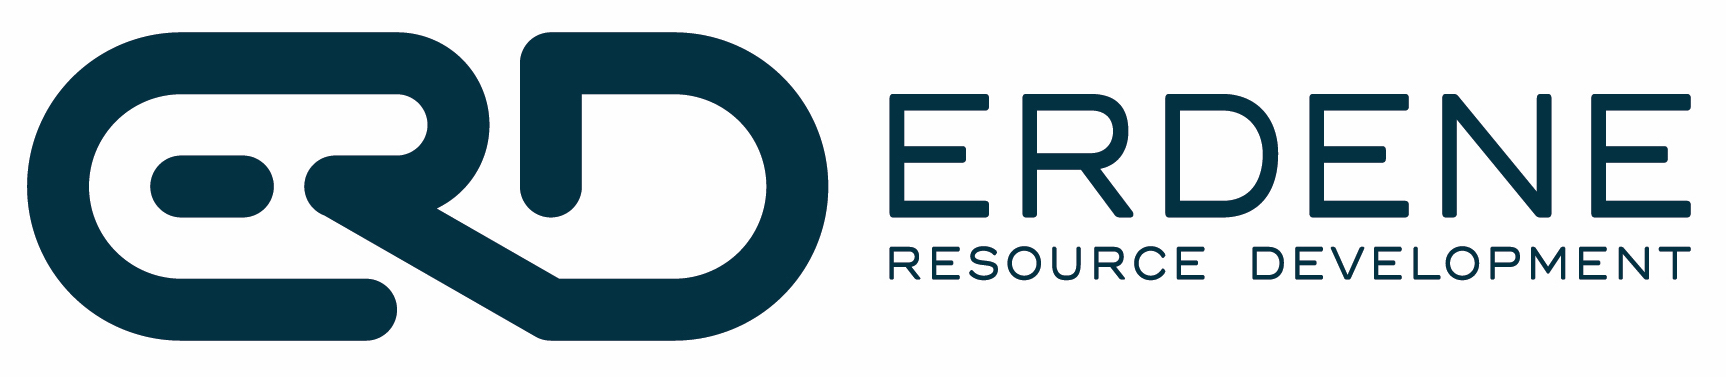 Erdene Closes $20 Million Financing to Advance Exploration and Development of the Khundii Gold District Led by $15 Million Strategic Investment From Eric Sprott